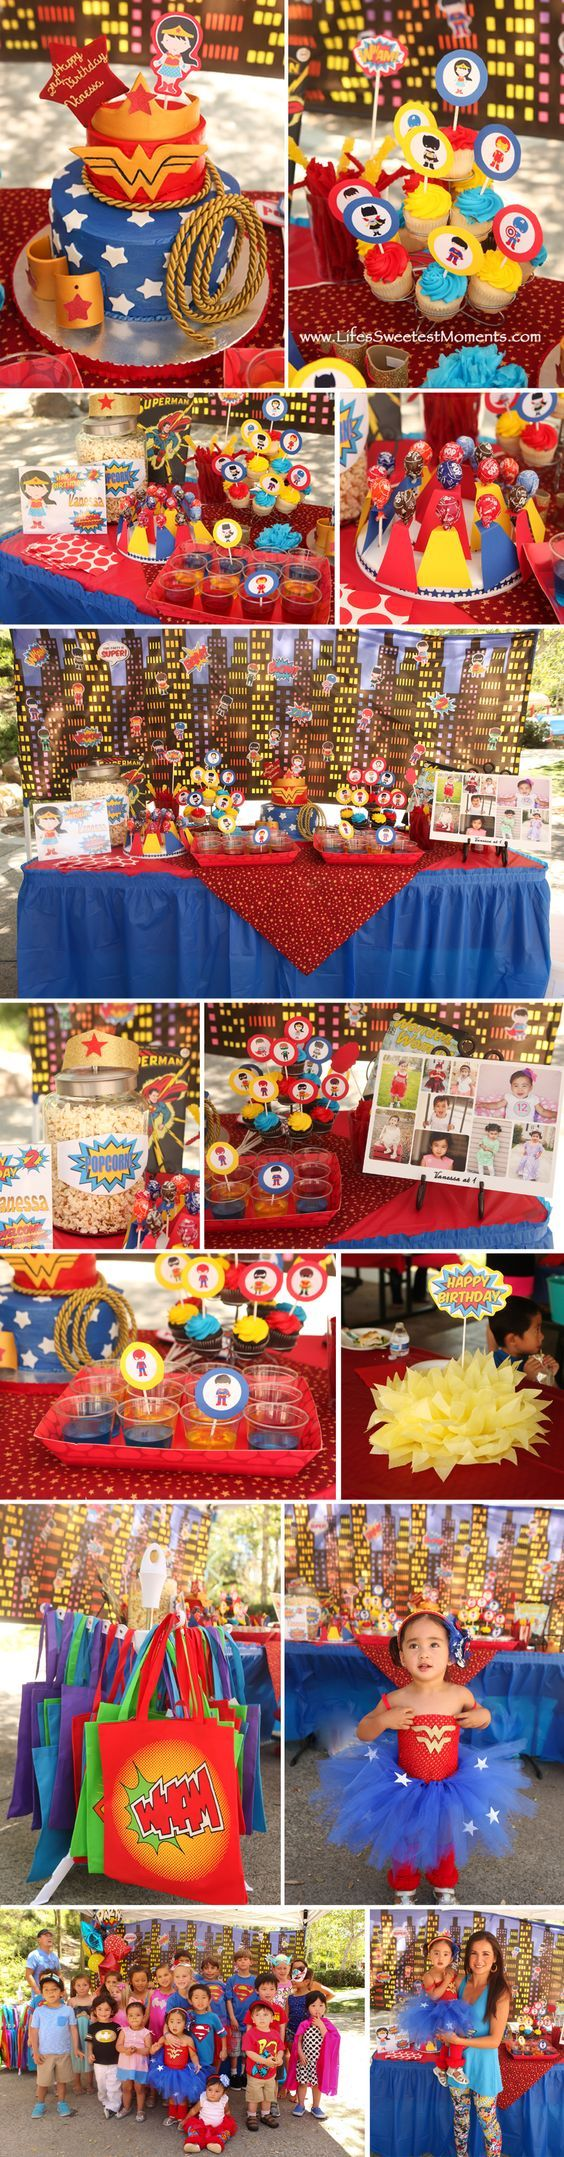 Wonder Woman theme birthday Party. Superhero theme birthday Party. Great ideas!: